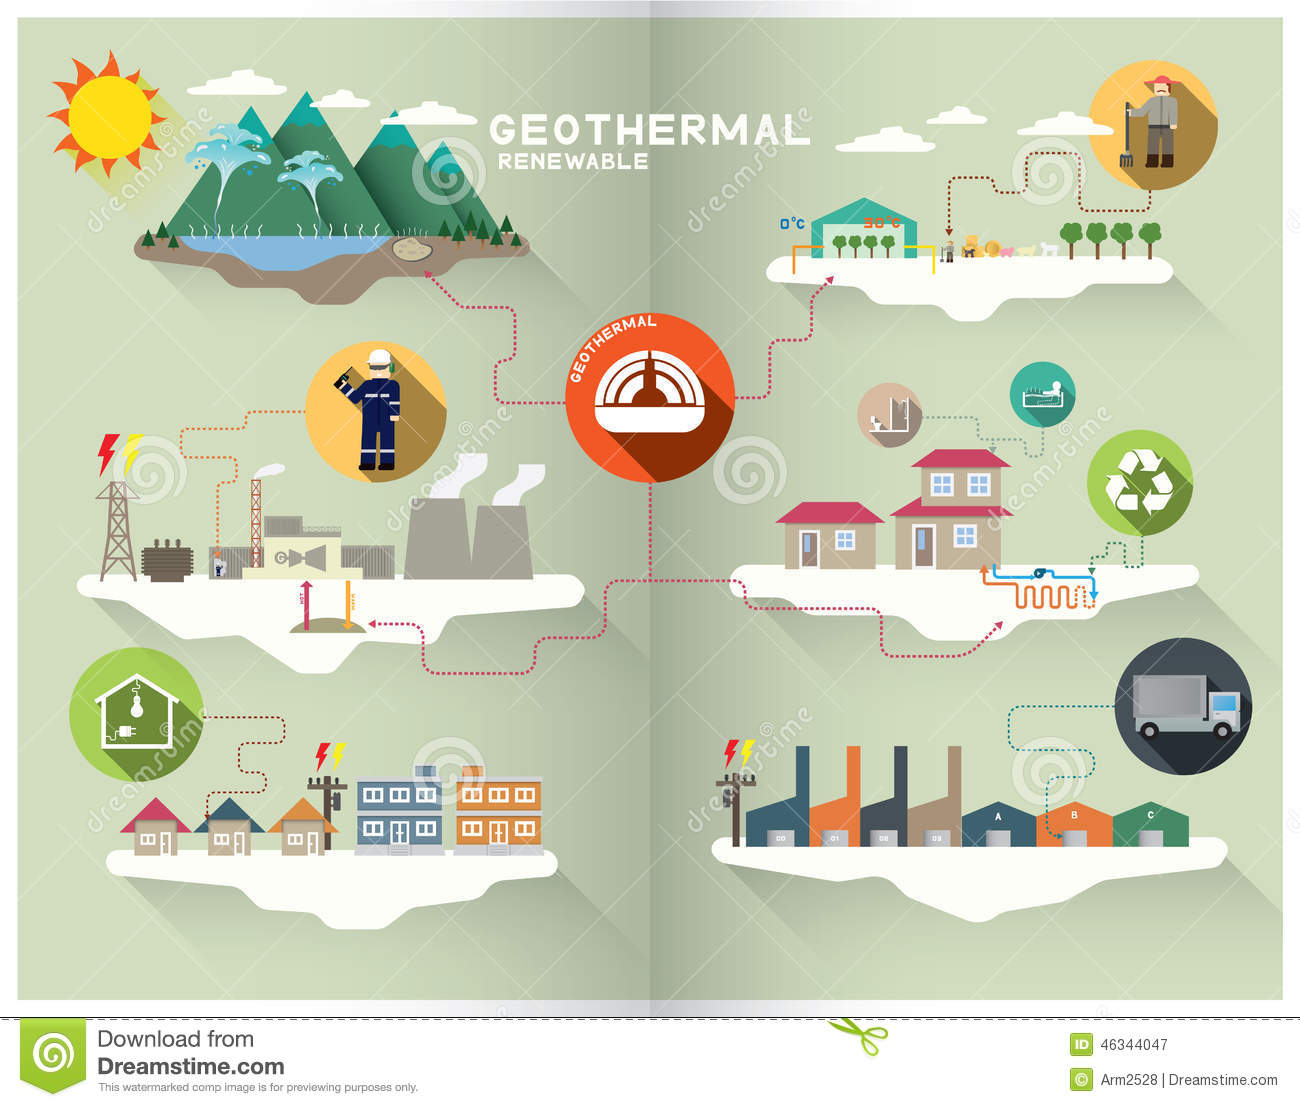 hight resolution of geothermal energy in simple graphic